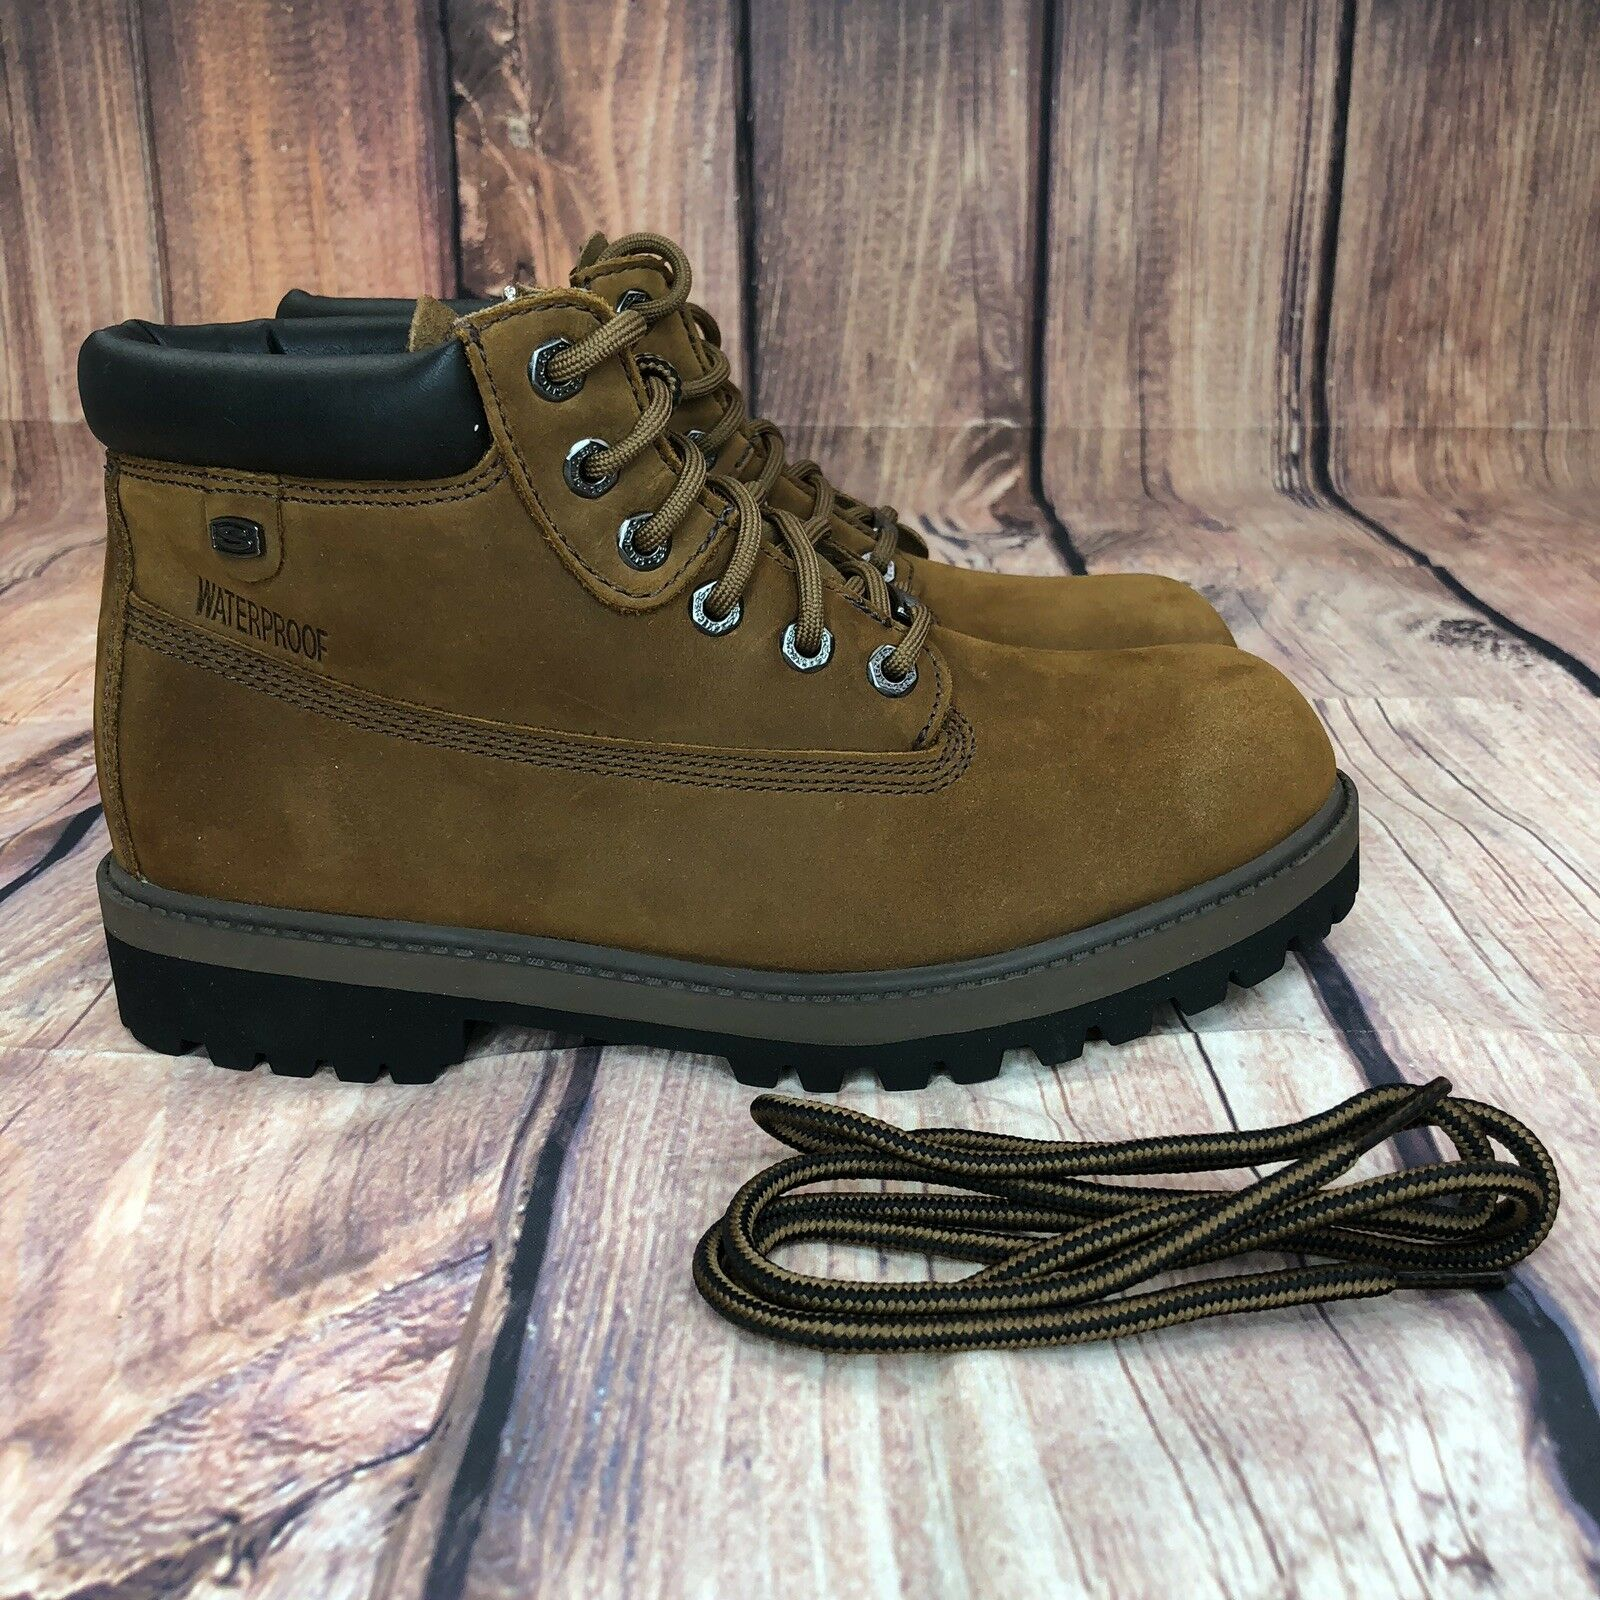 Skechers Relaxed Fit Ranger Boots Women Size 10 - EUR 40 NEW 48351 CDB